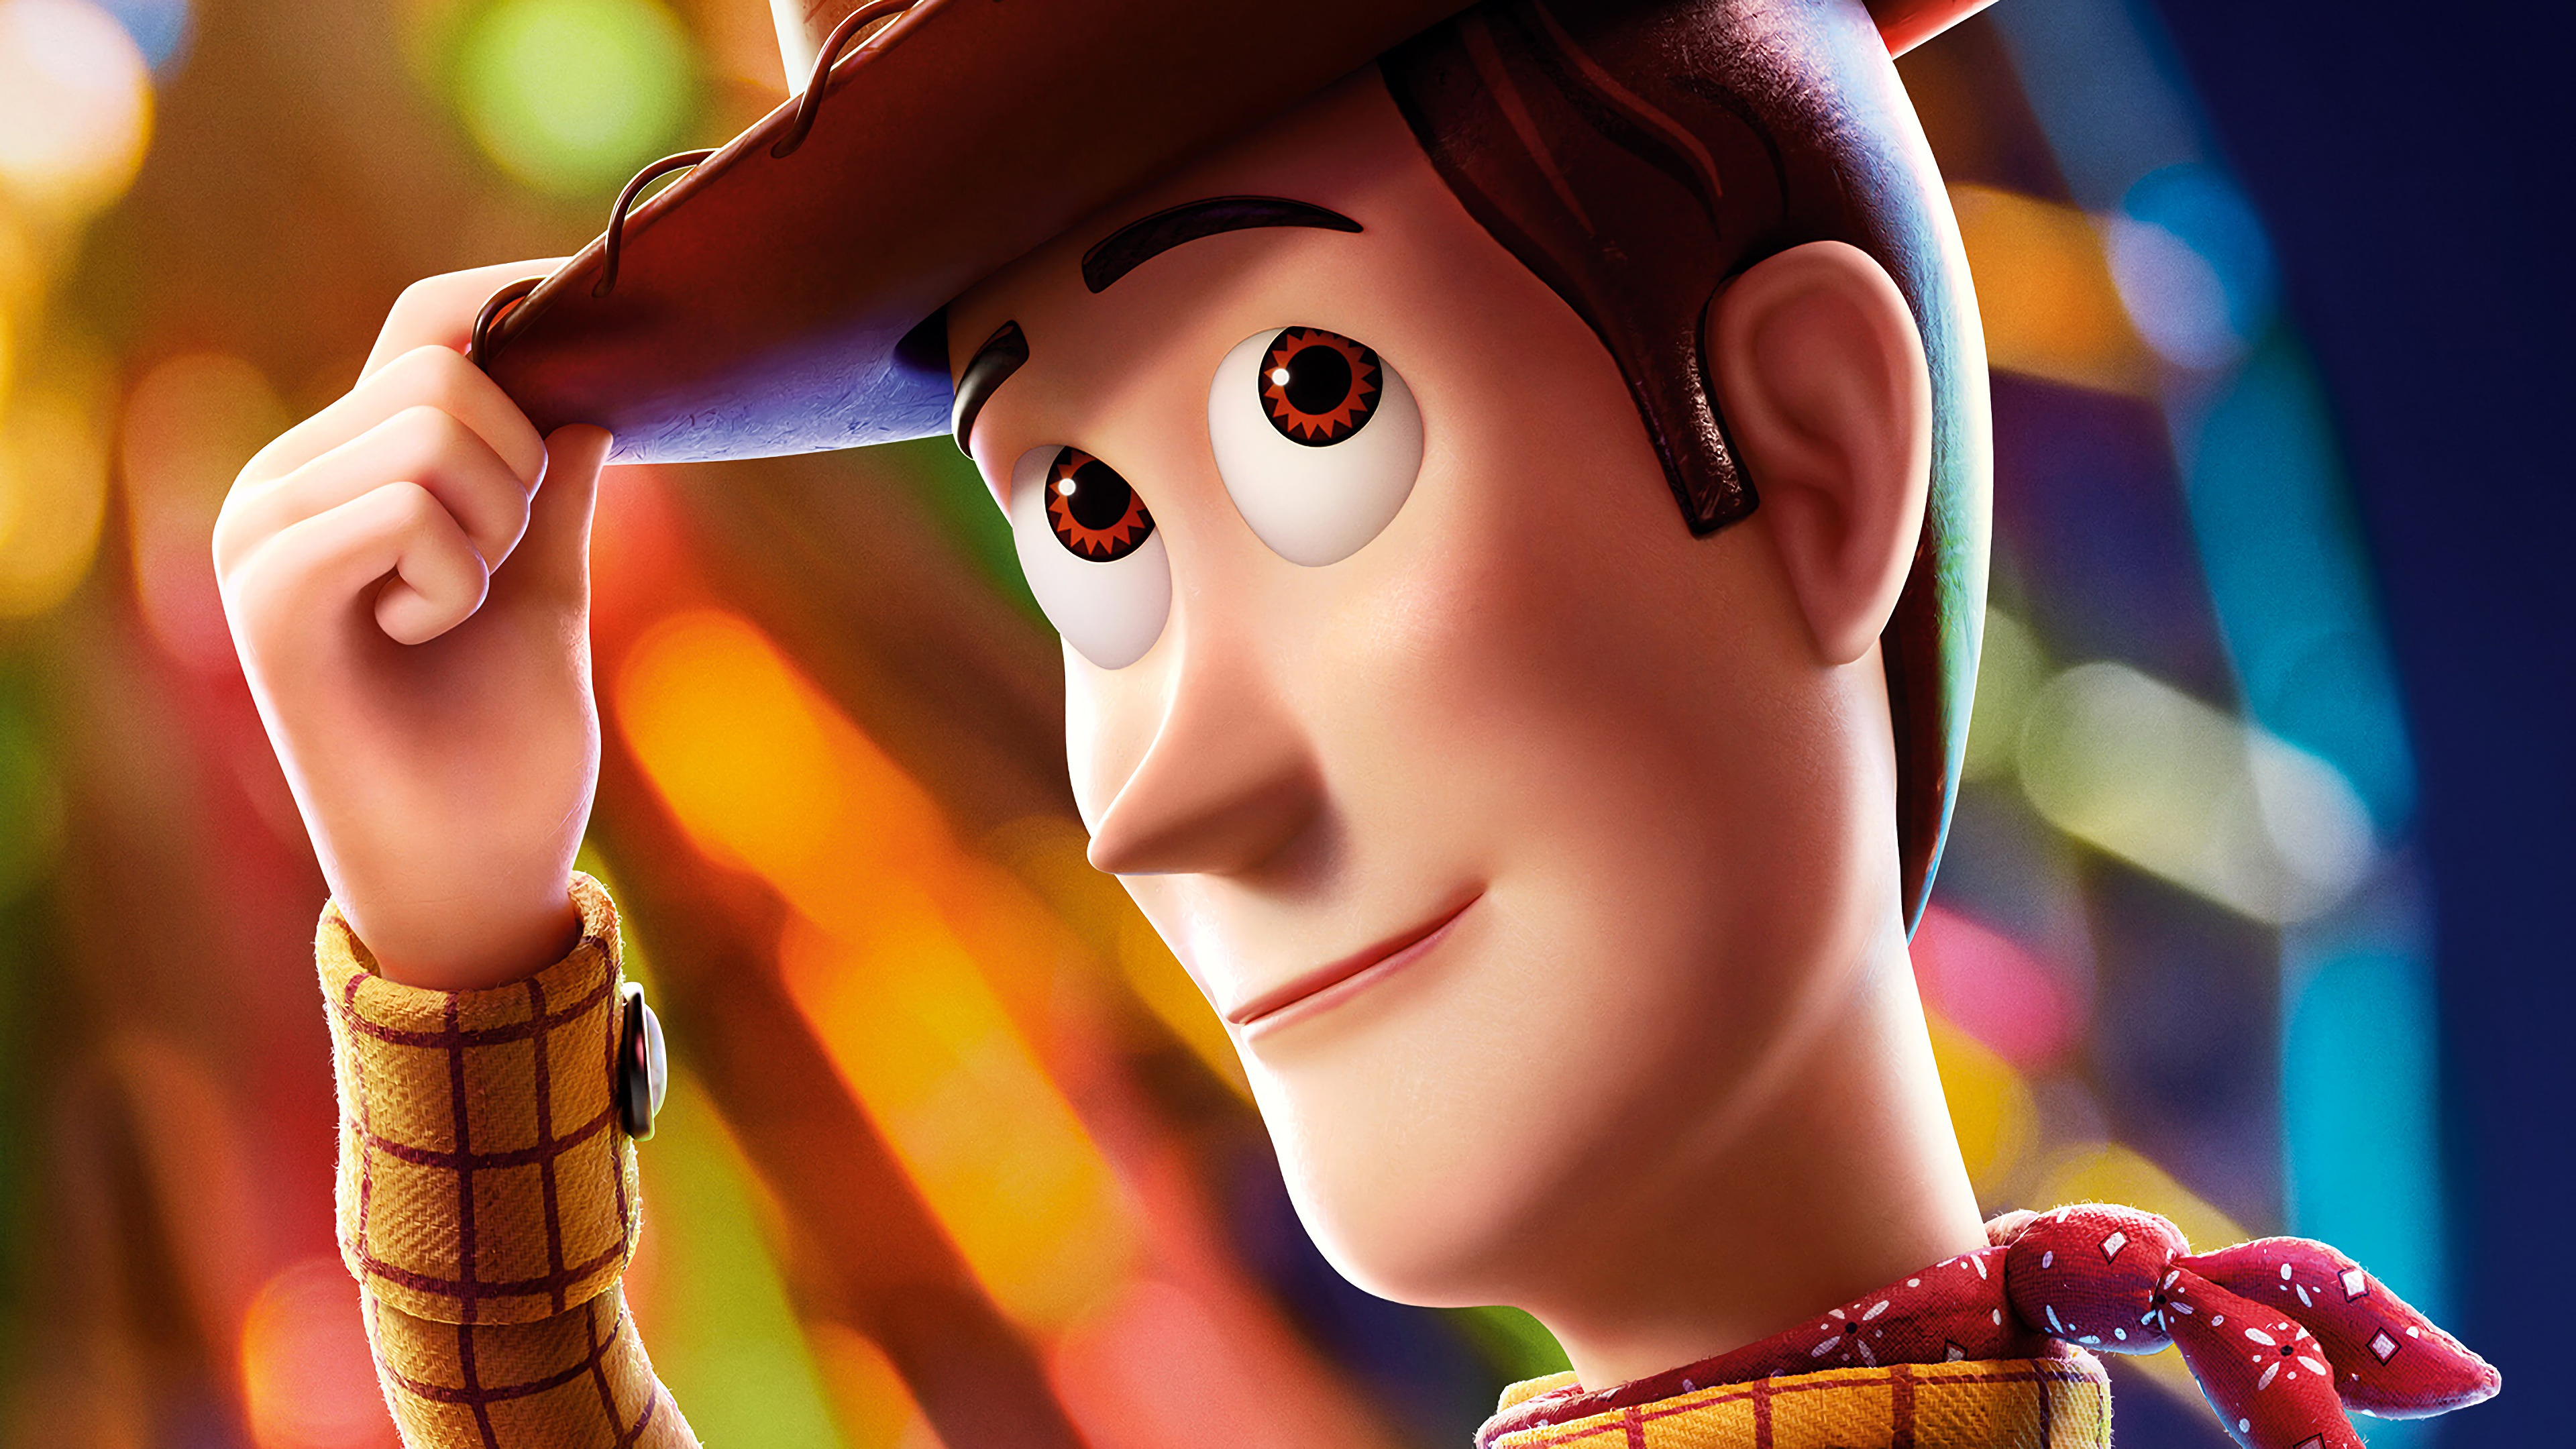 Toy Story 4 Woody Wallpaper 4k Ultra Hd Id3325